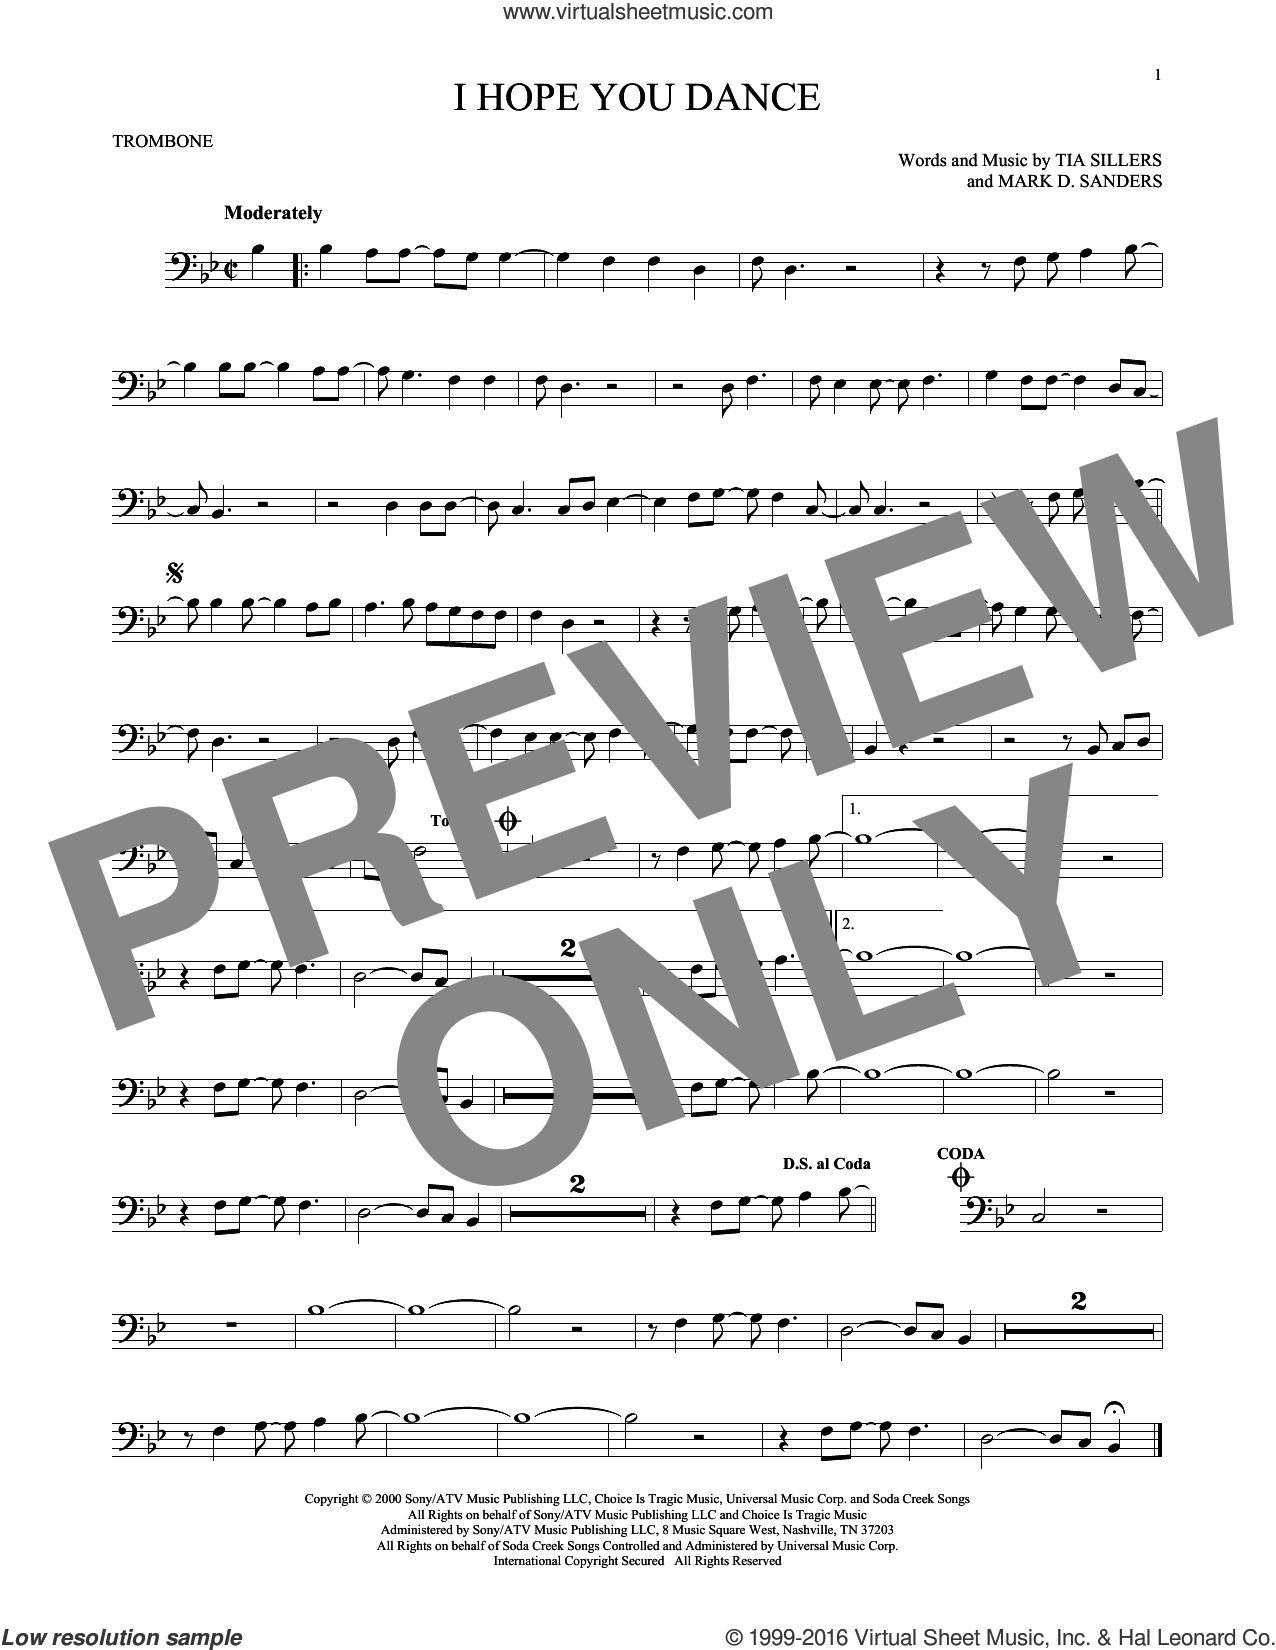 I Hope You Dance sheet music for trombone solo by Lee Ann Womack with Sons of the Desert, Mark D. Sanders and Tia Sillers, intermediate skill level